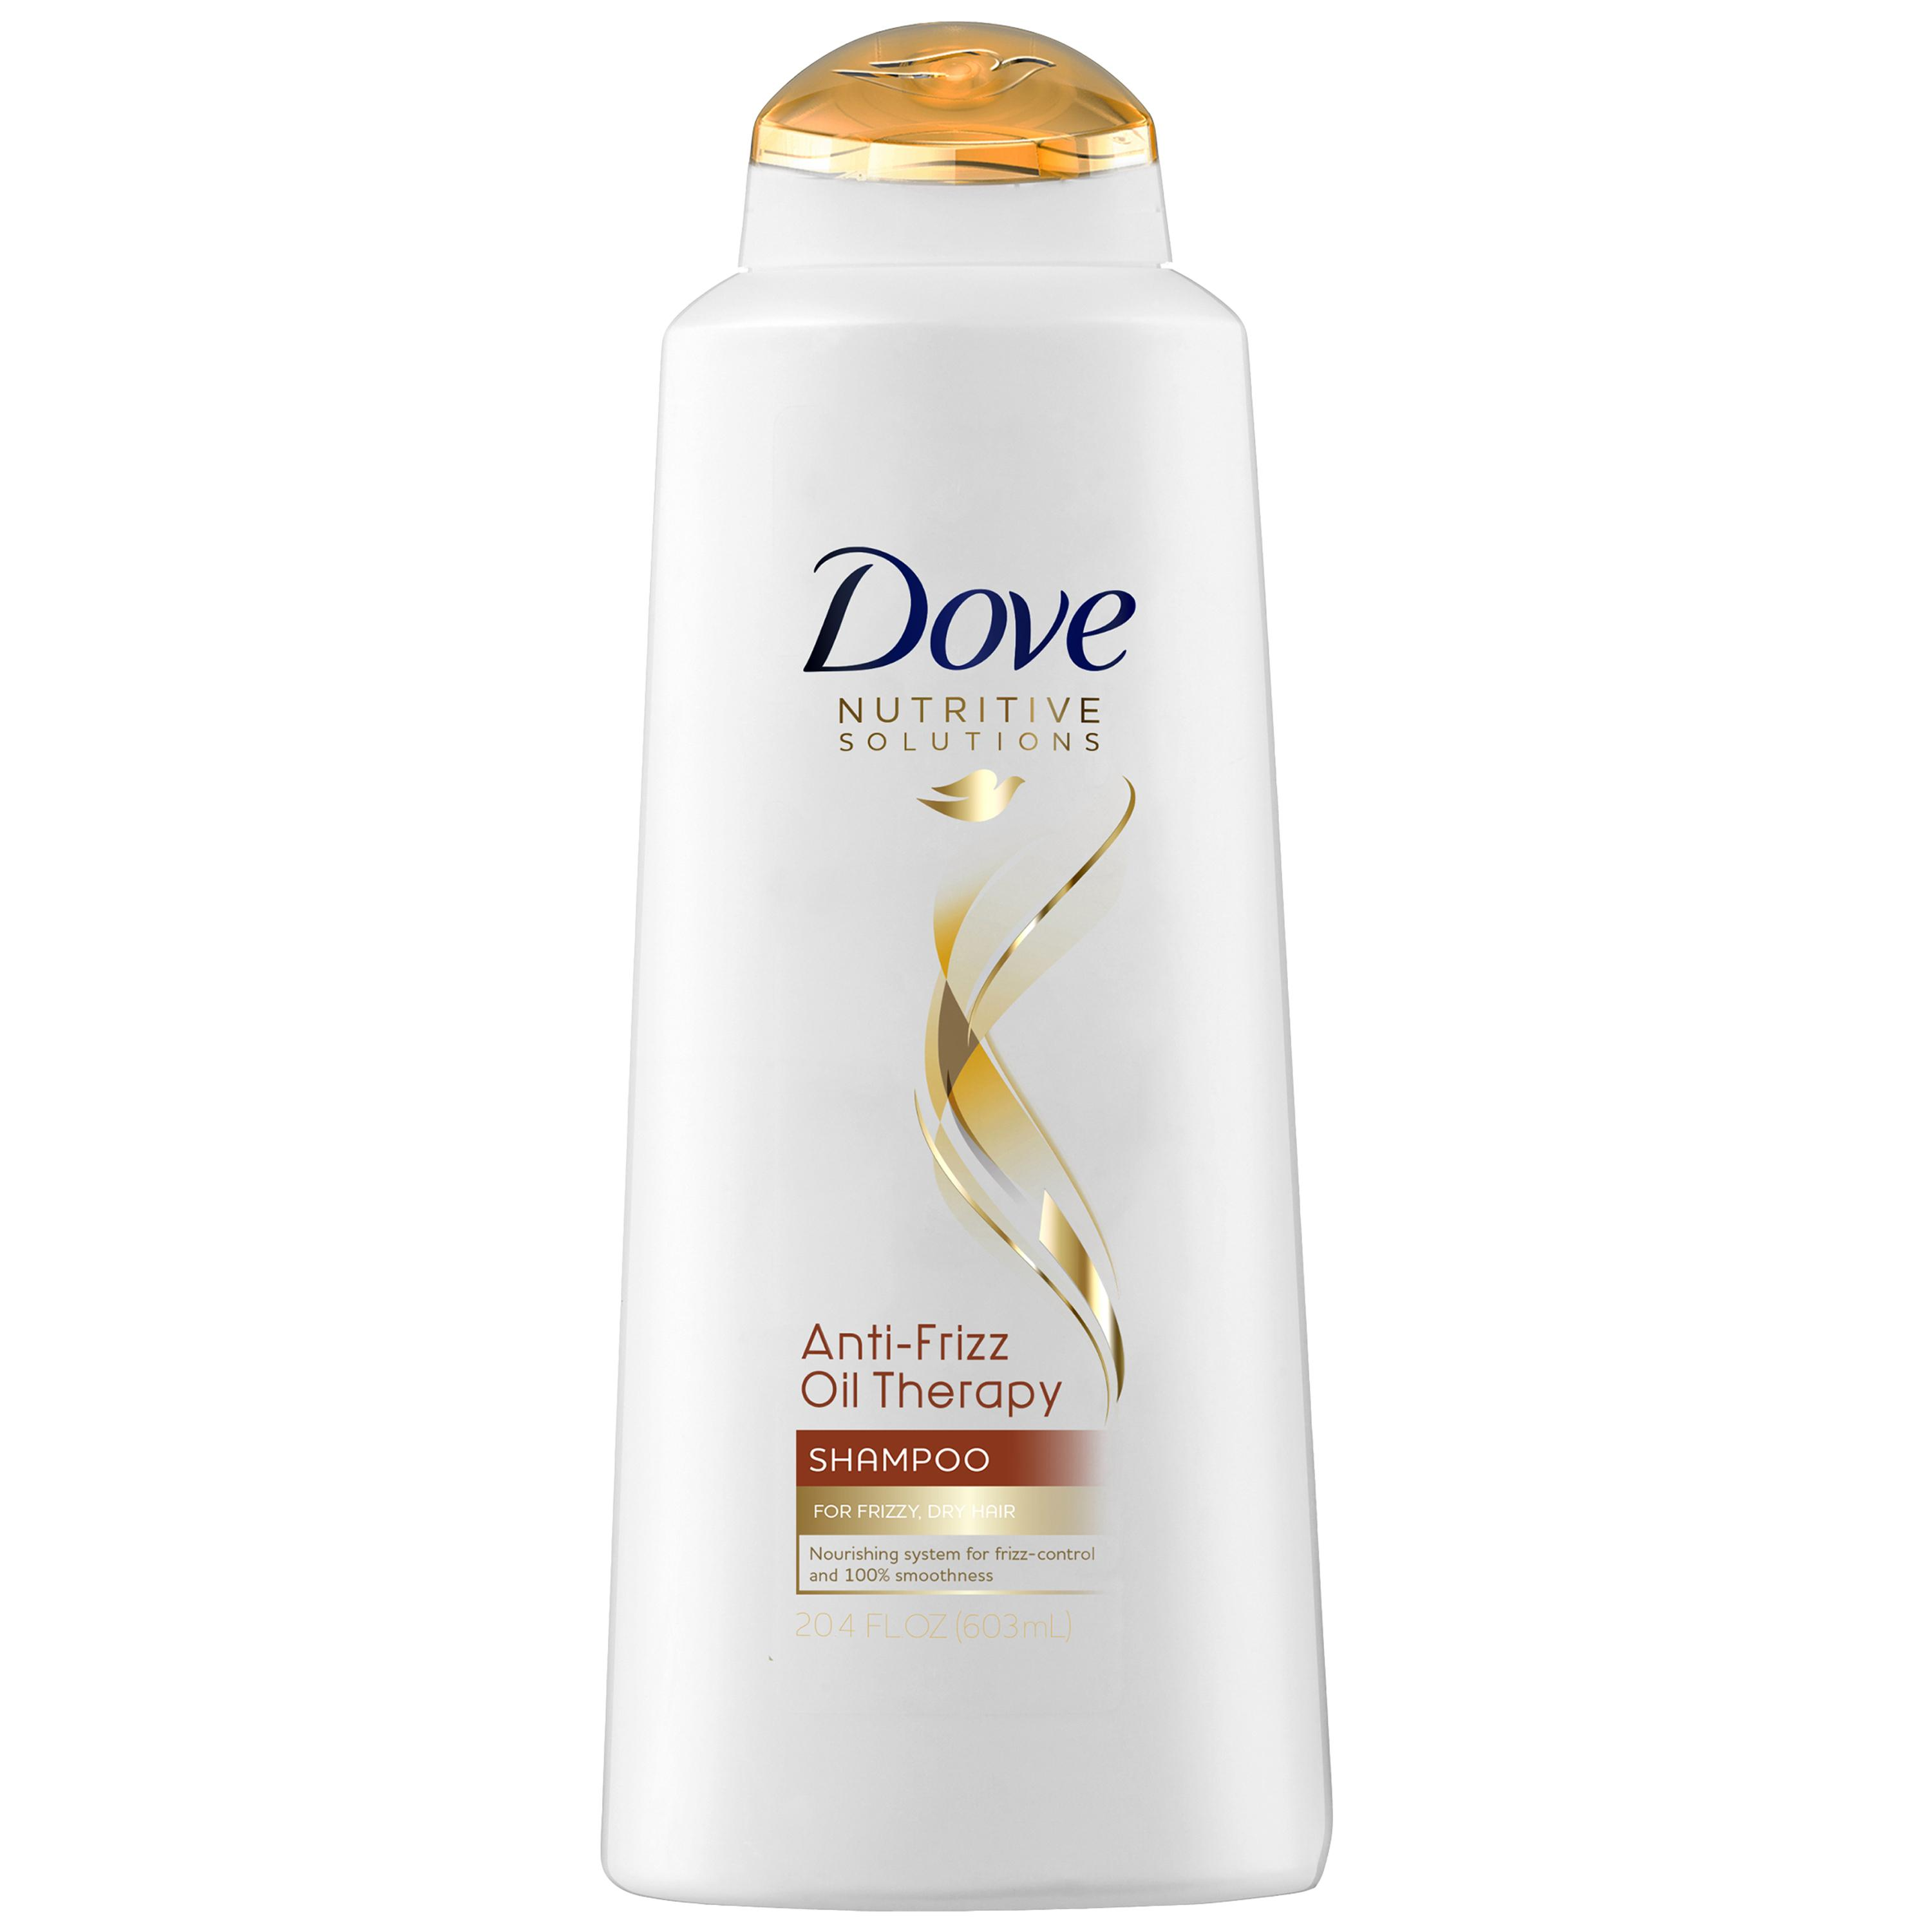 Dove Nourishing Oil Shampoo 25 4 Ounce Amazon Ca Beauty